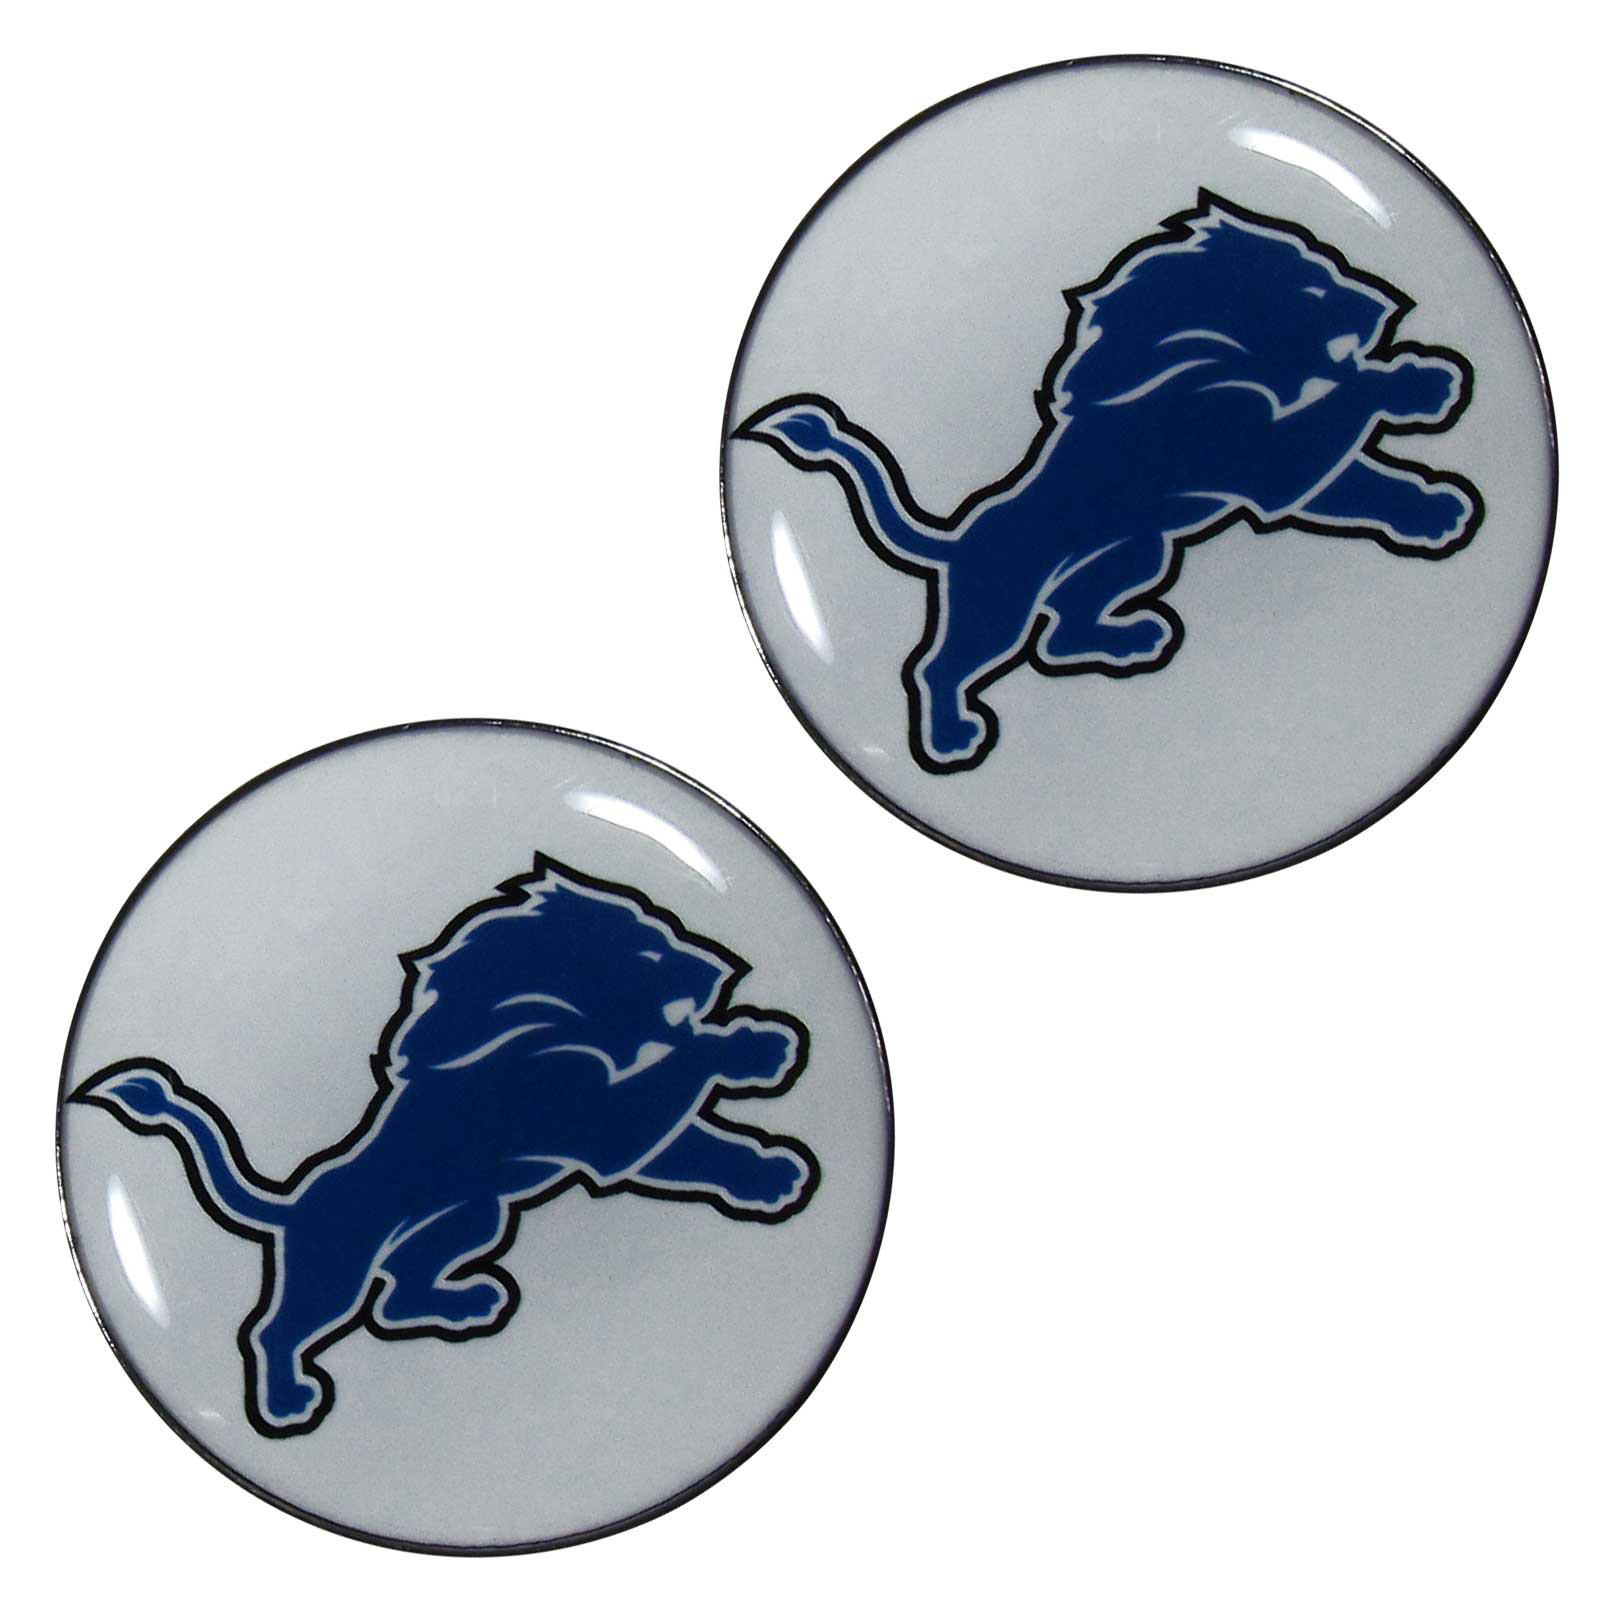 Detroit Lions Ear Gauge Pair  - Officially licensed NFL Detroit Lions ear plugs are double flared for a snug fit and the back screws on and off. They are made of quality 316L stainless steel and feature an inlaid Detroit Lions logo.